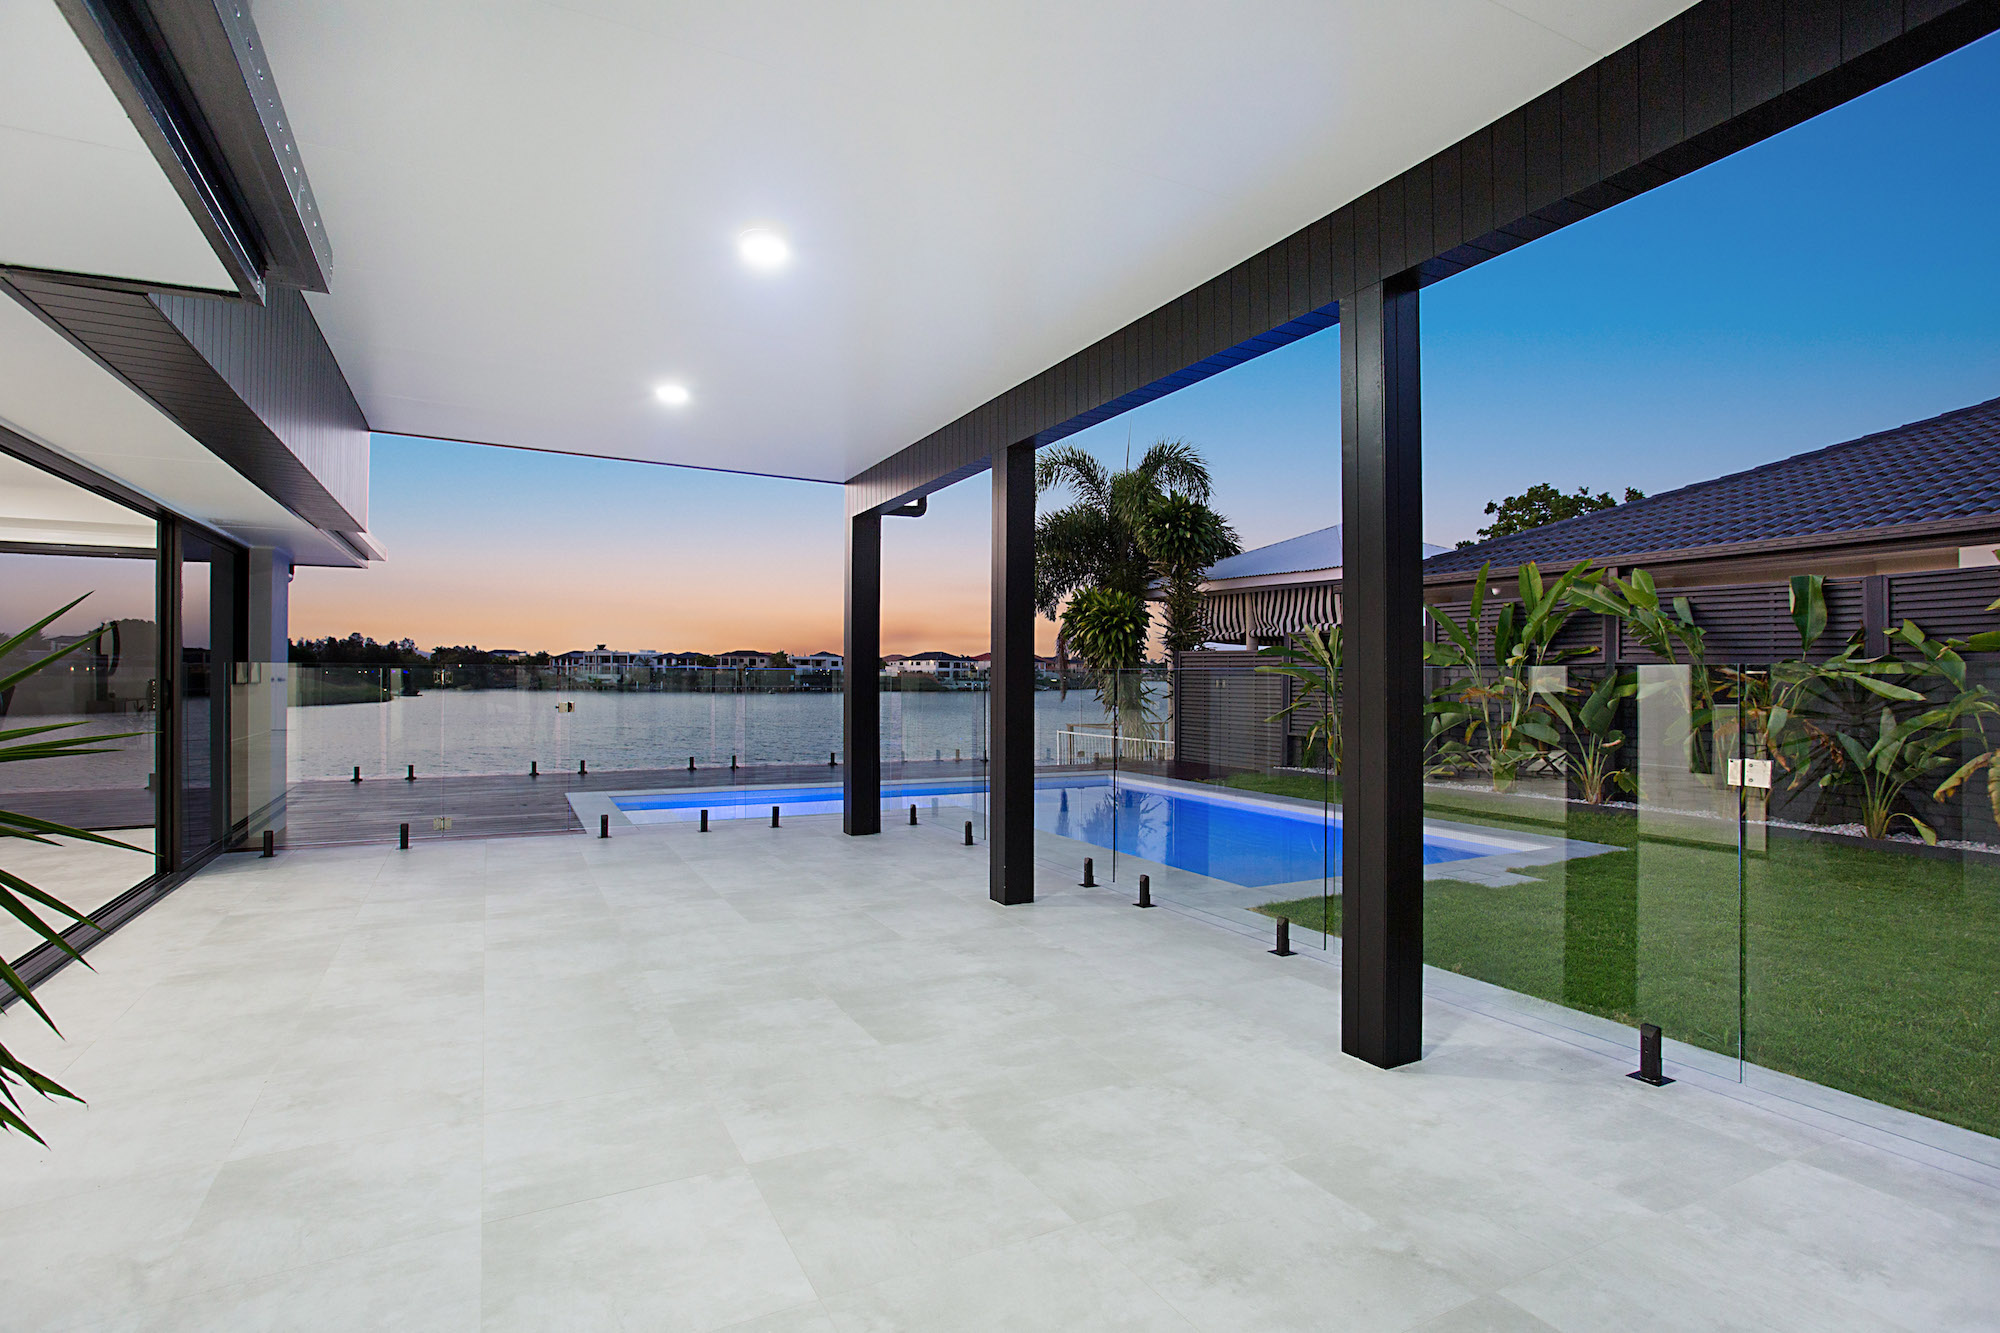 Outdoor patio area with concrete tiles and black cladding